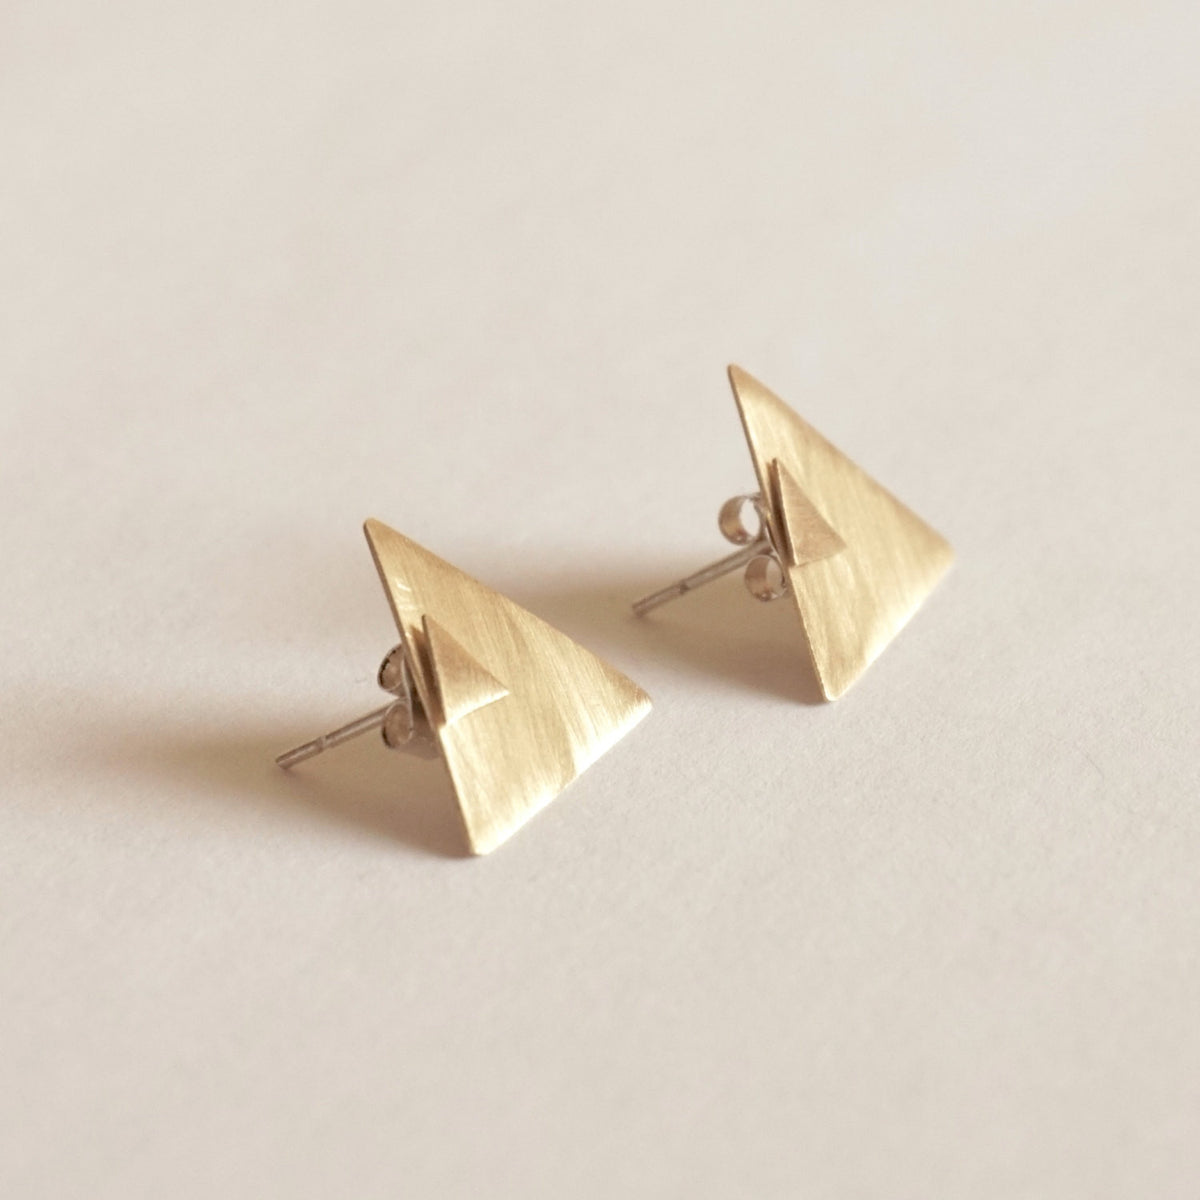 Minimalist Perfection Triangle Shaped Ear Jacket Earrings - 0191 - Virginia Wynne Designs